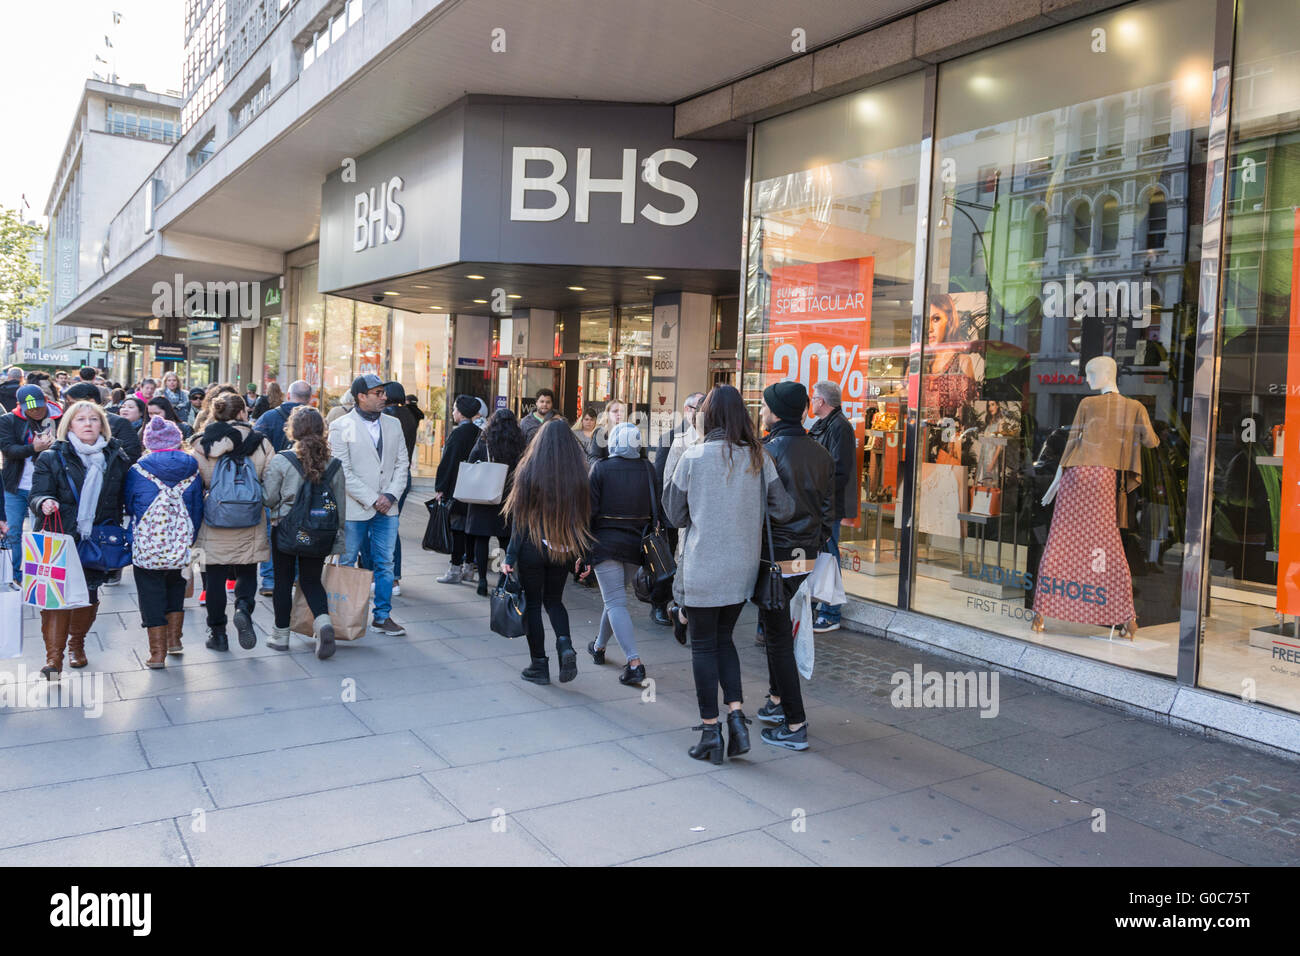 Shoppers pass in front of the former flagship BHS store on London's Oxford Street. - Stock Image